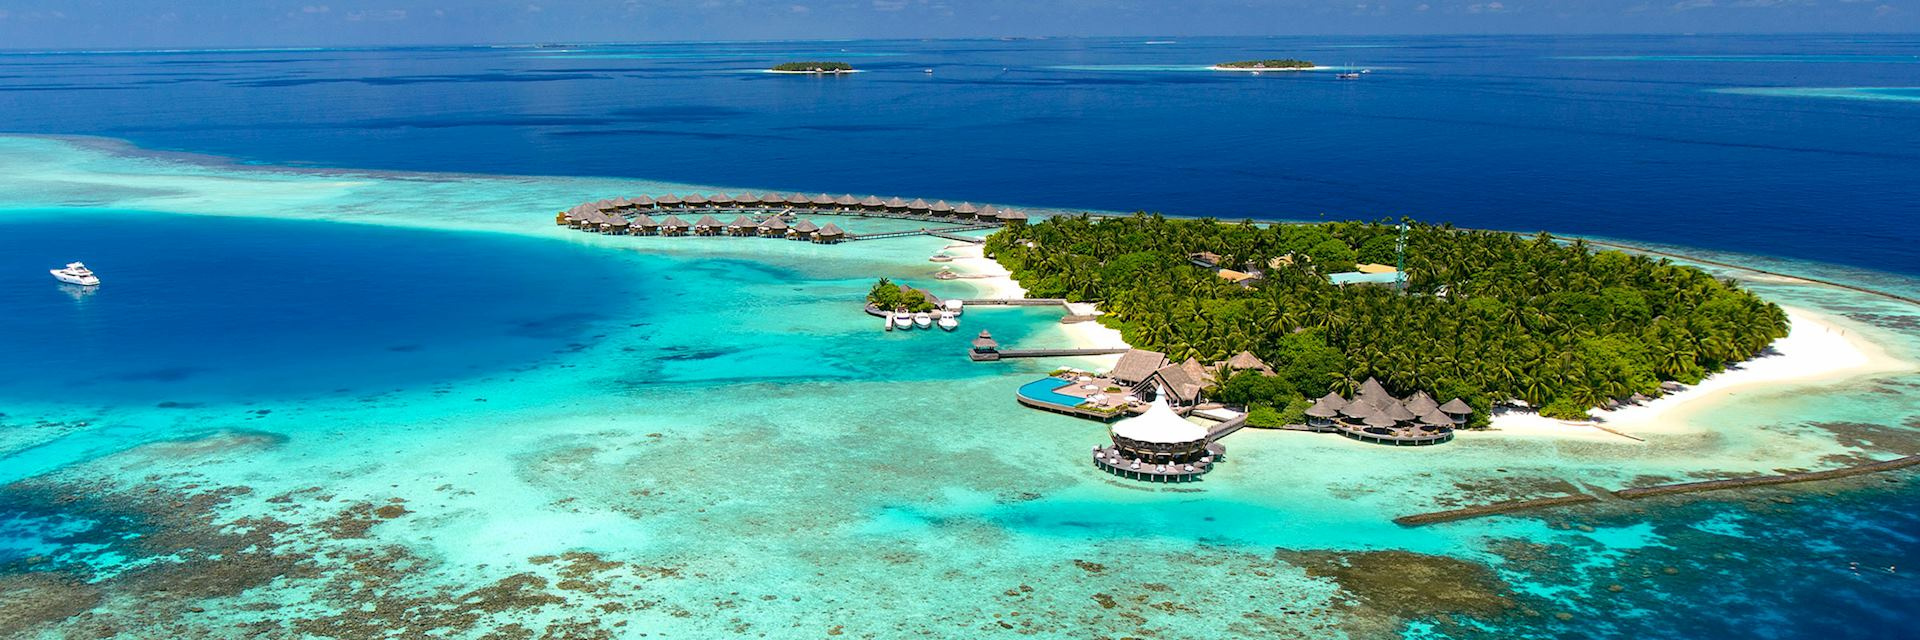 Aerial view, Baros, Maldives